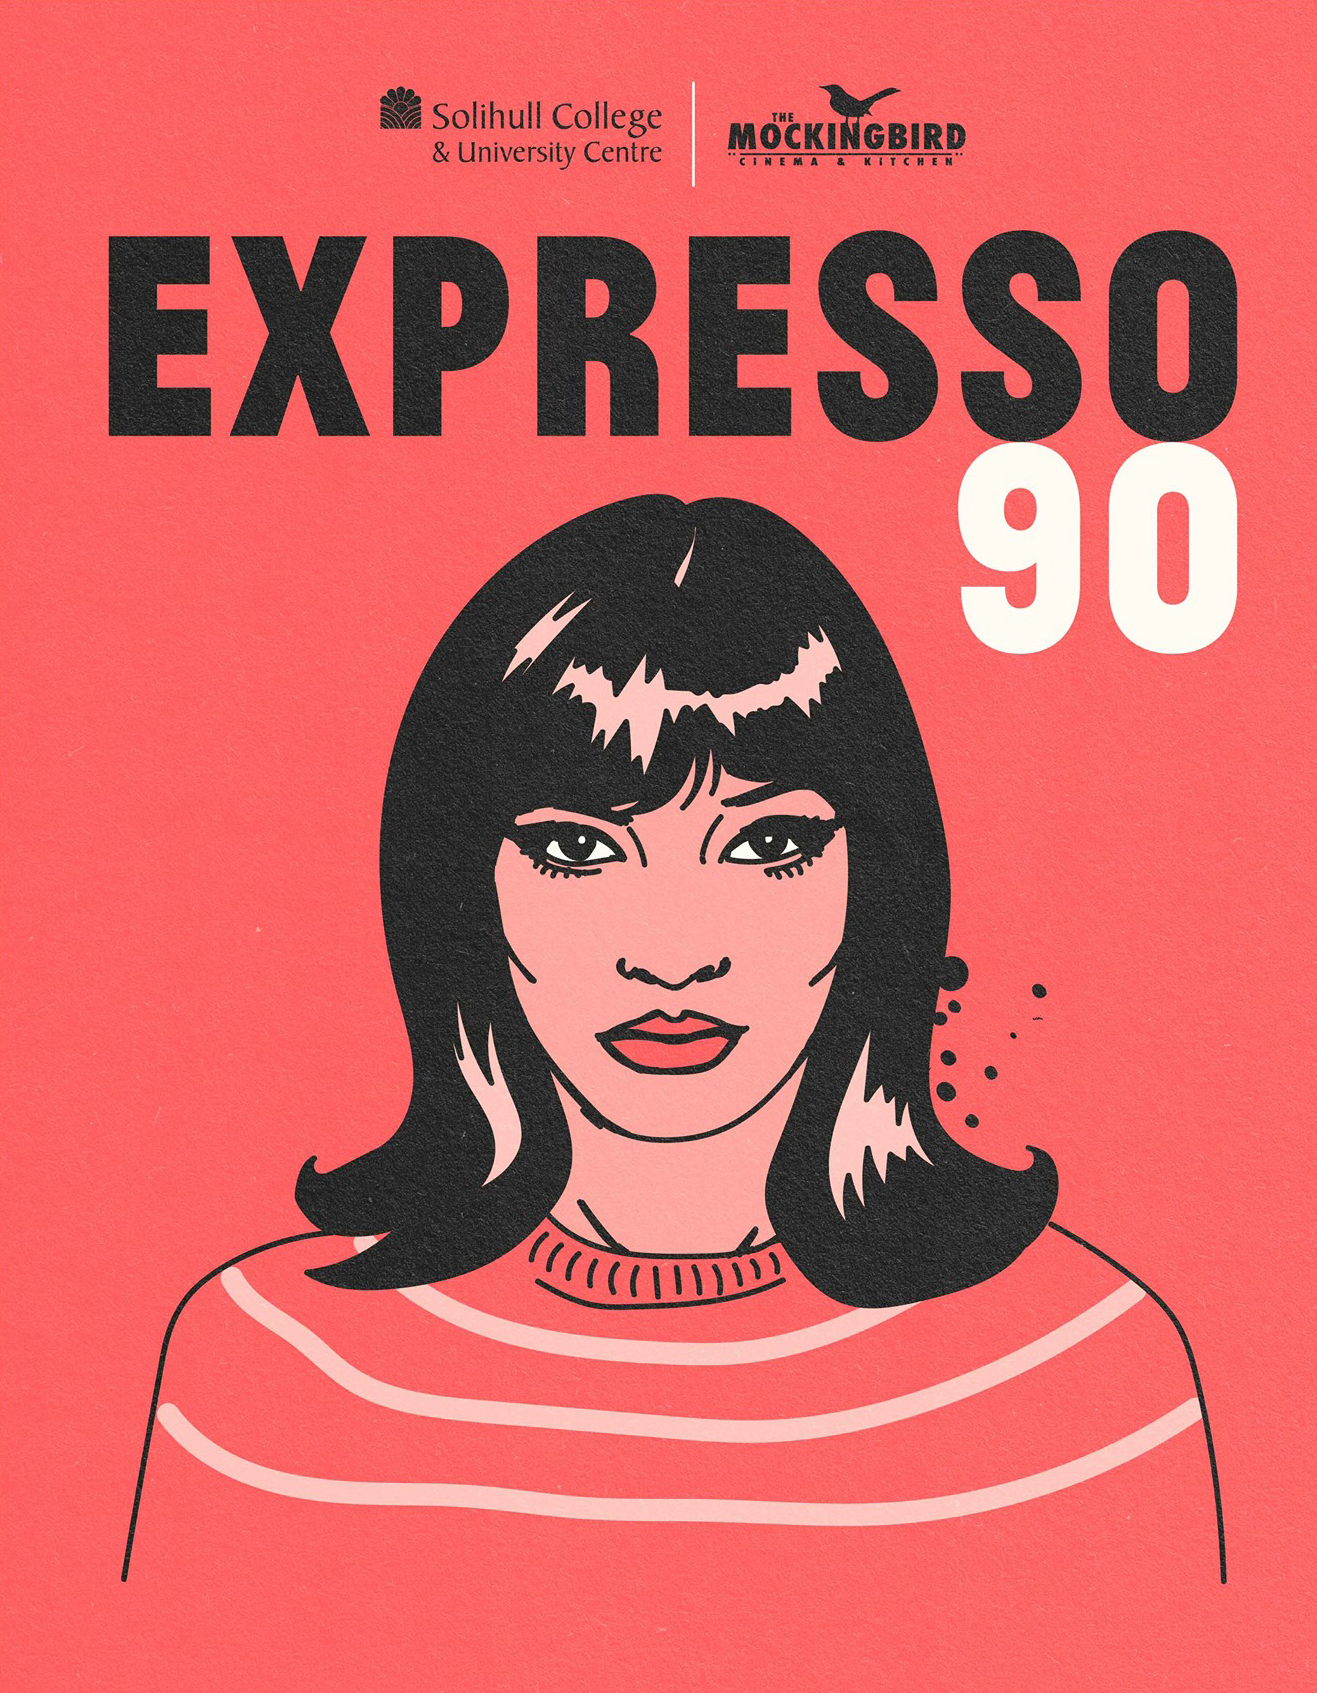 Expresso 90 poster featuring a cartoon woman